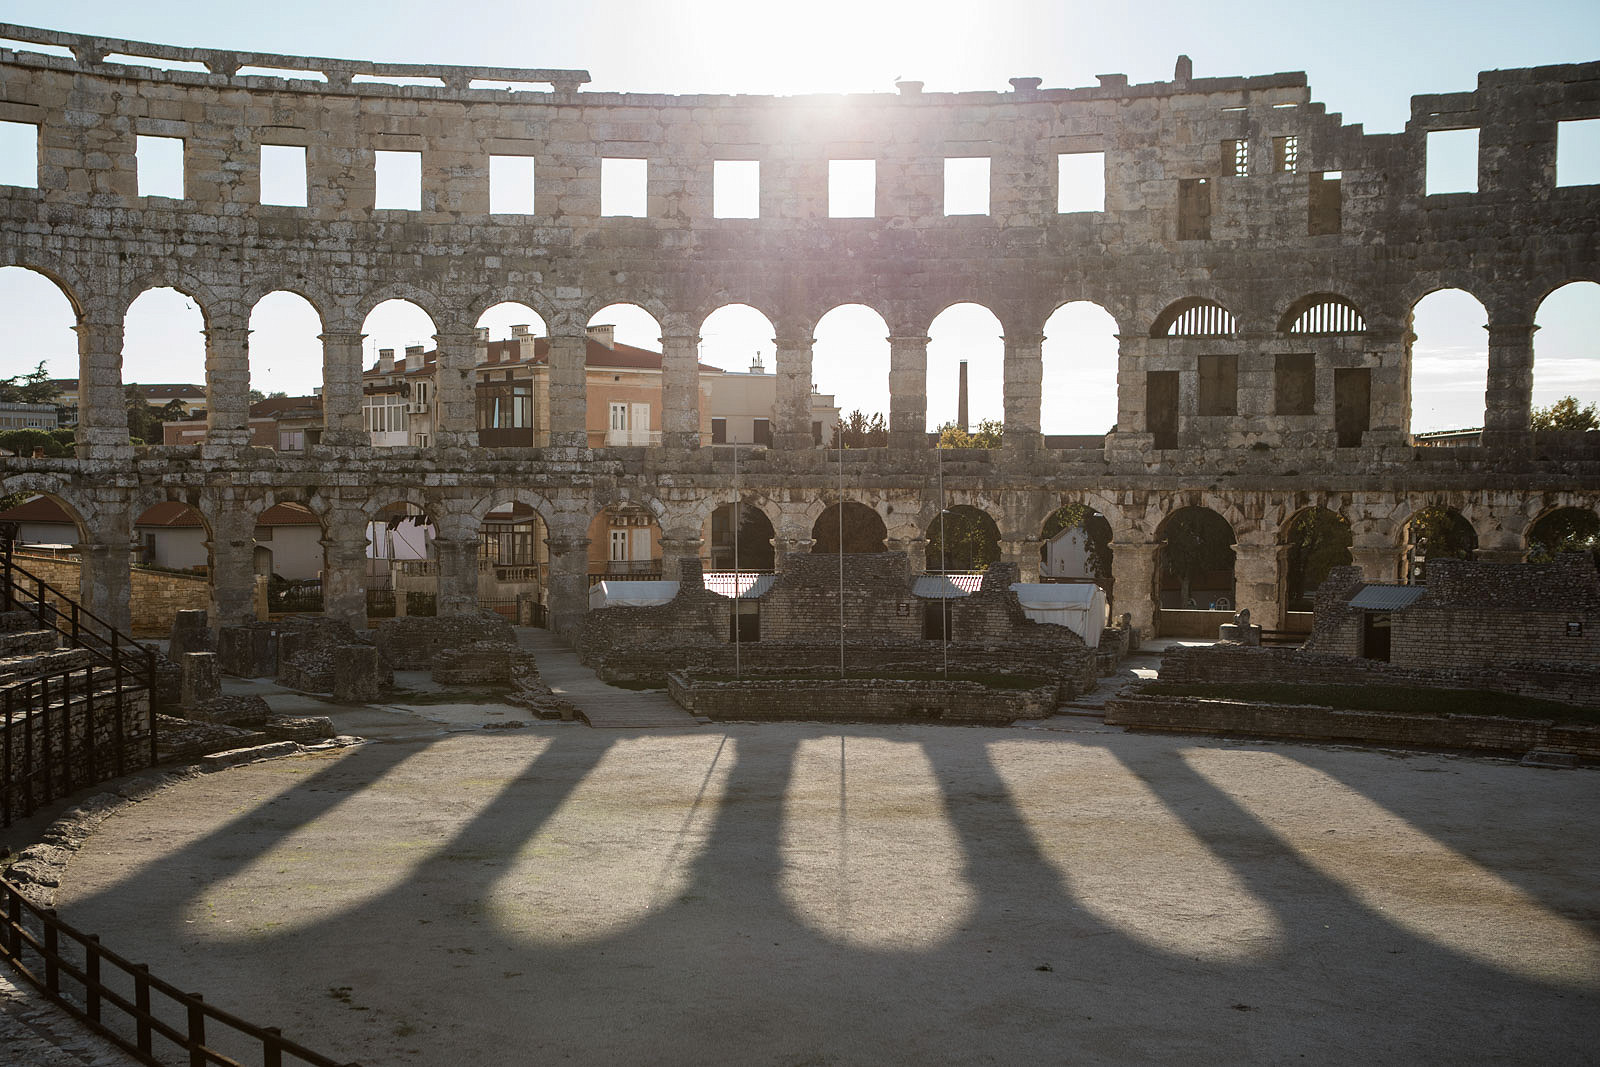 Visiting Pula - a Day Trip From Rovinj and Exploring the Roman Ruins